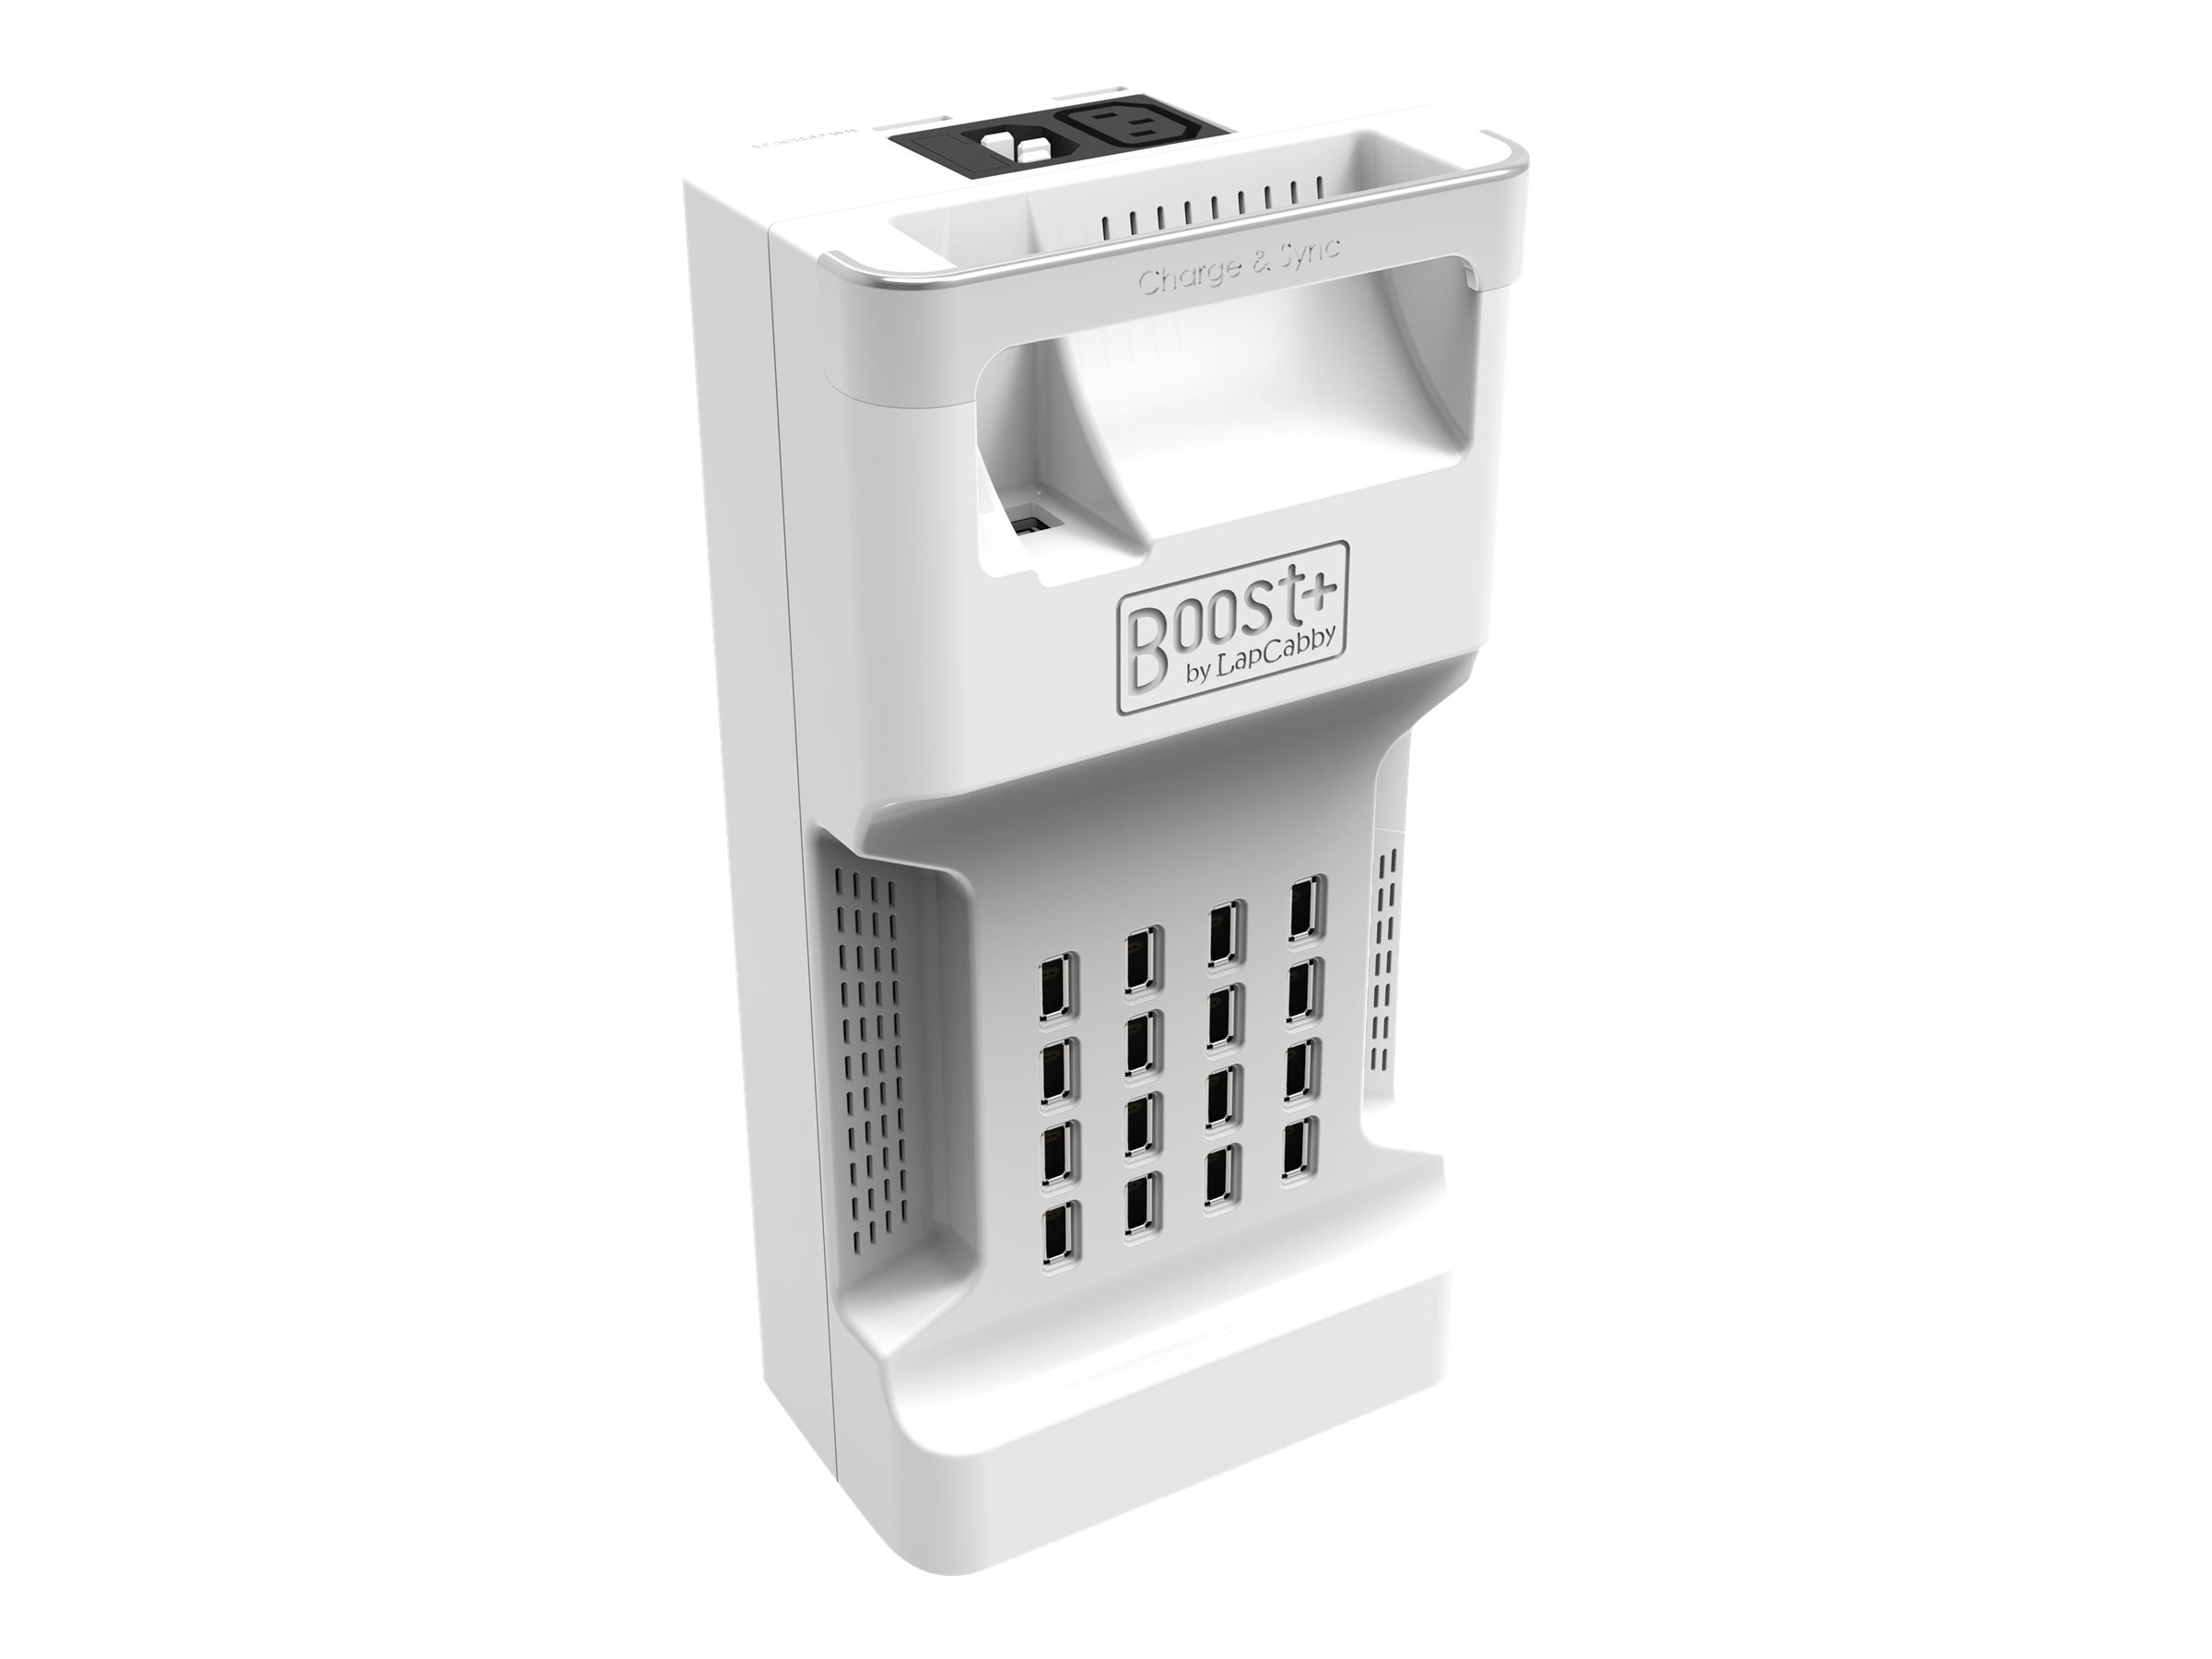 LapCabby Boost 16 Charge and Sync Station, White